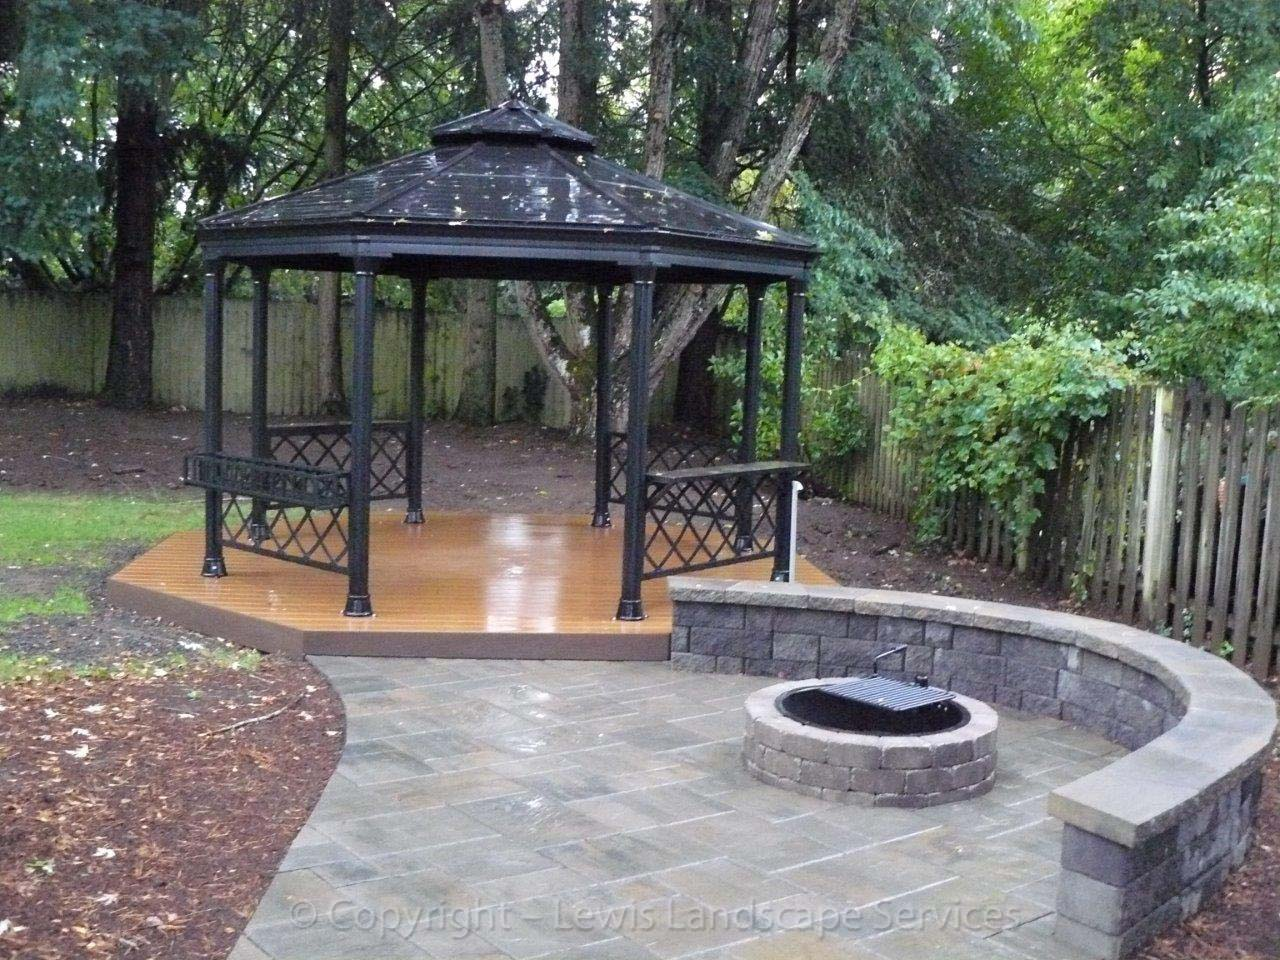 Outdoor-living-spPaver Patio, Pathway, Fire Pit, Seat Wall, Gazebo, Deckaces-paver-patios-driveways-pathways-green-project-summer-2013 002